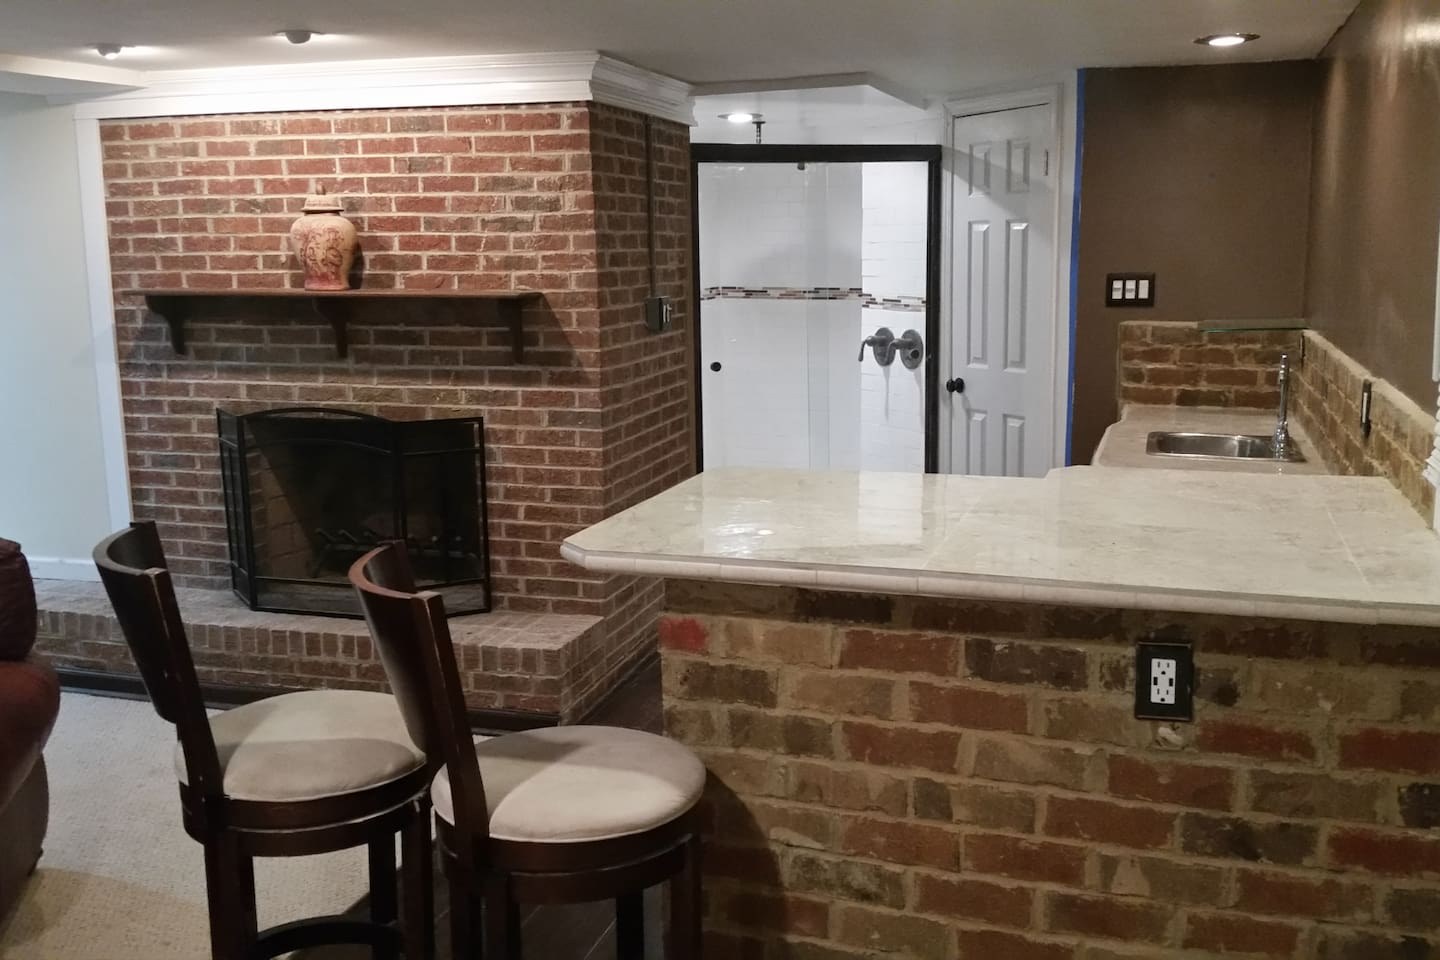 Fireplace, bar, cooktop stove and under bar refrigerator